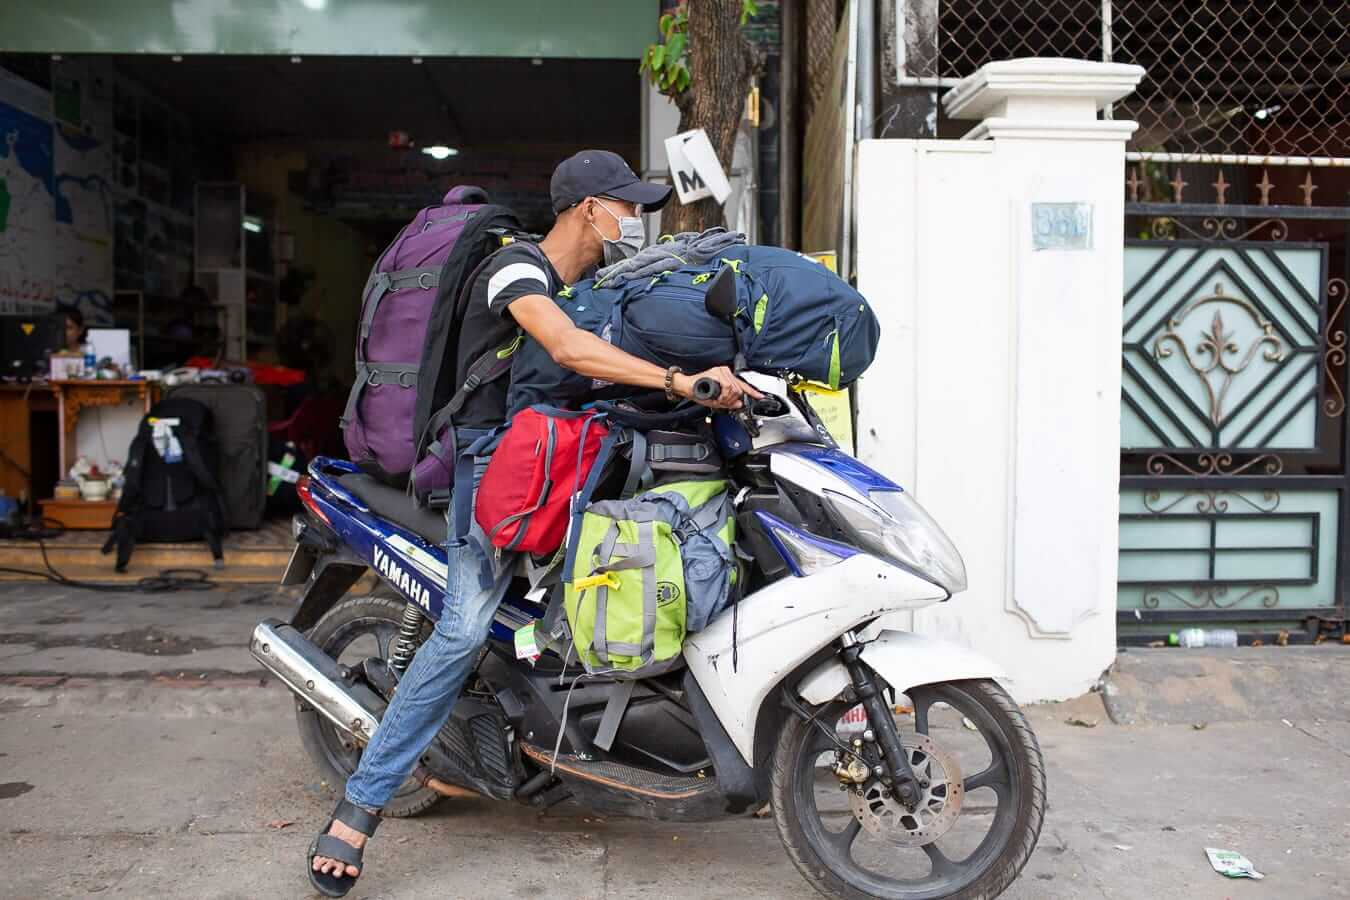 Motorbikes loaded with backpacks: Motorbike Rental Shops in Hoi An